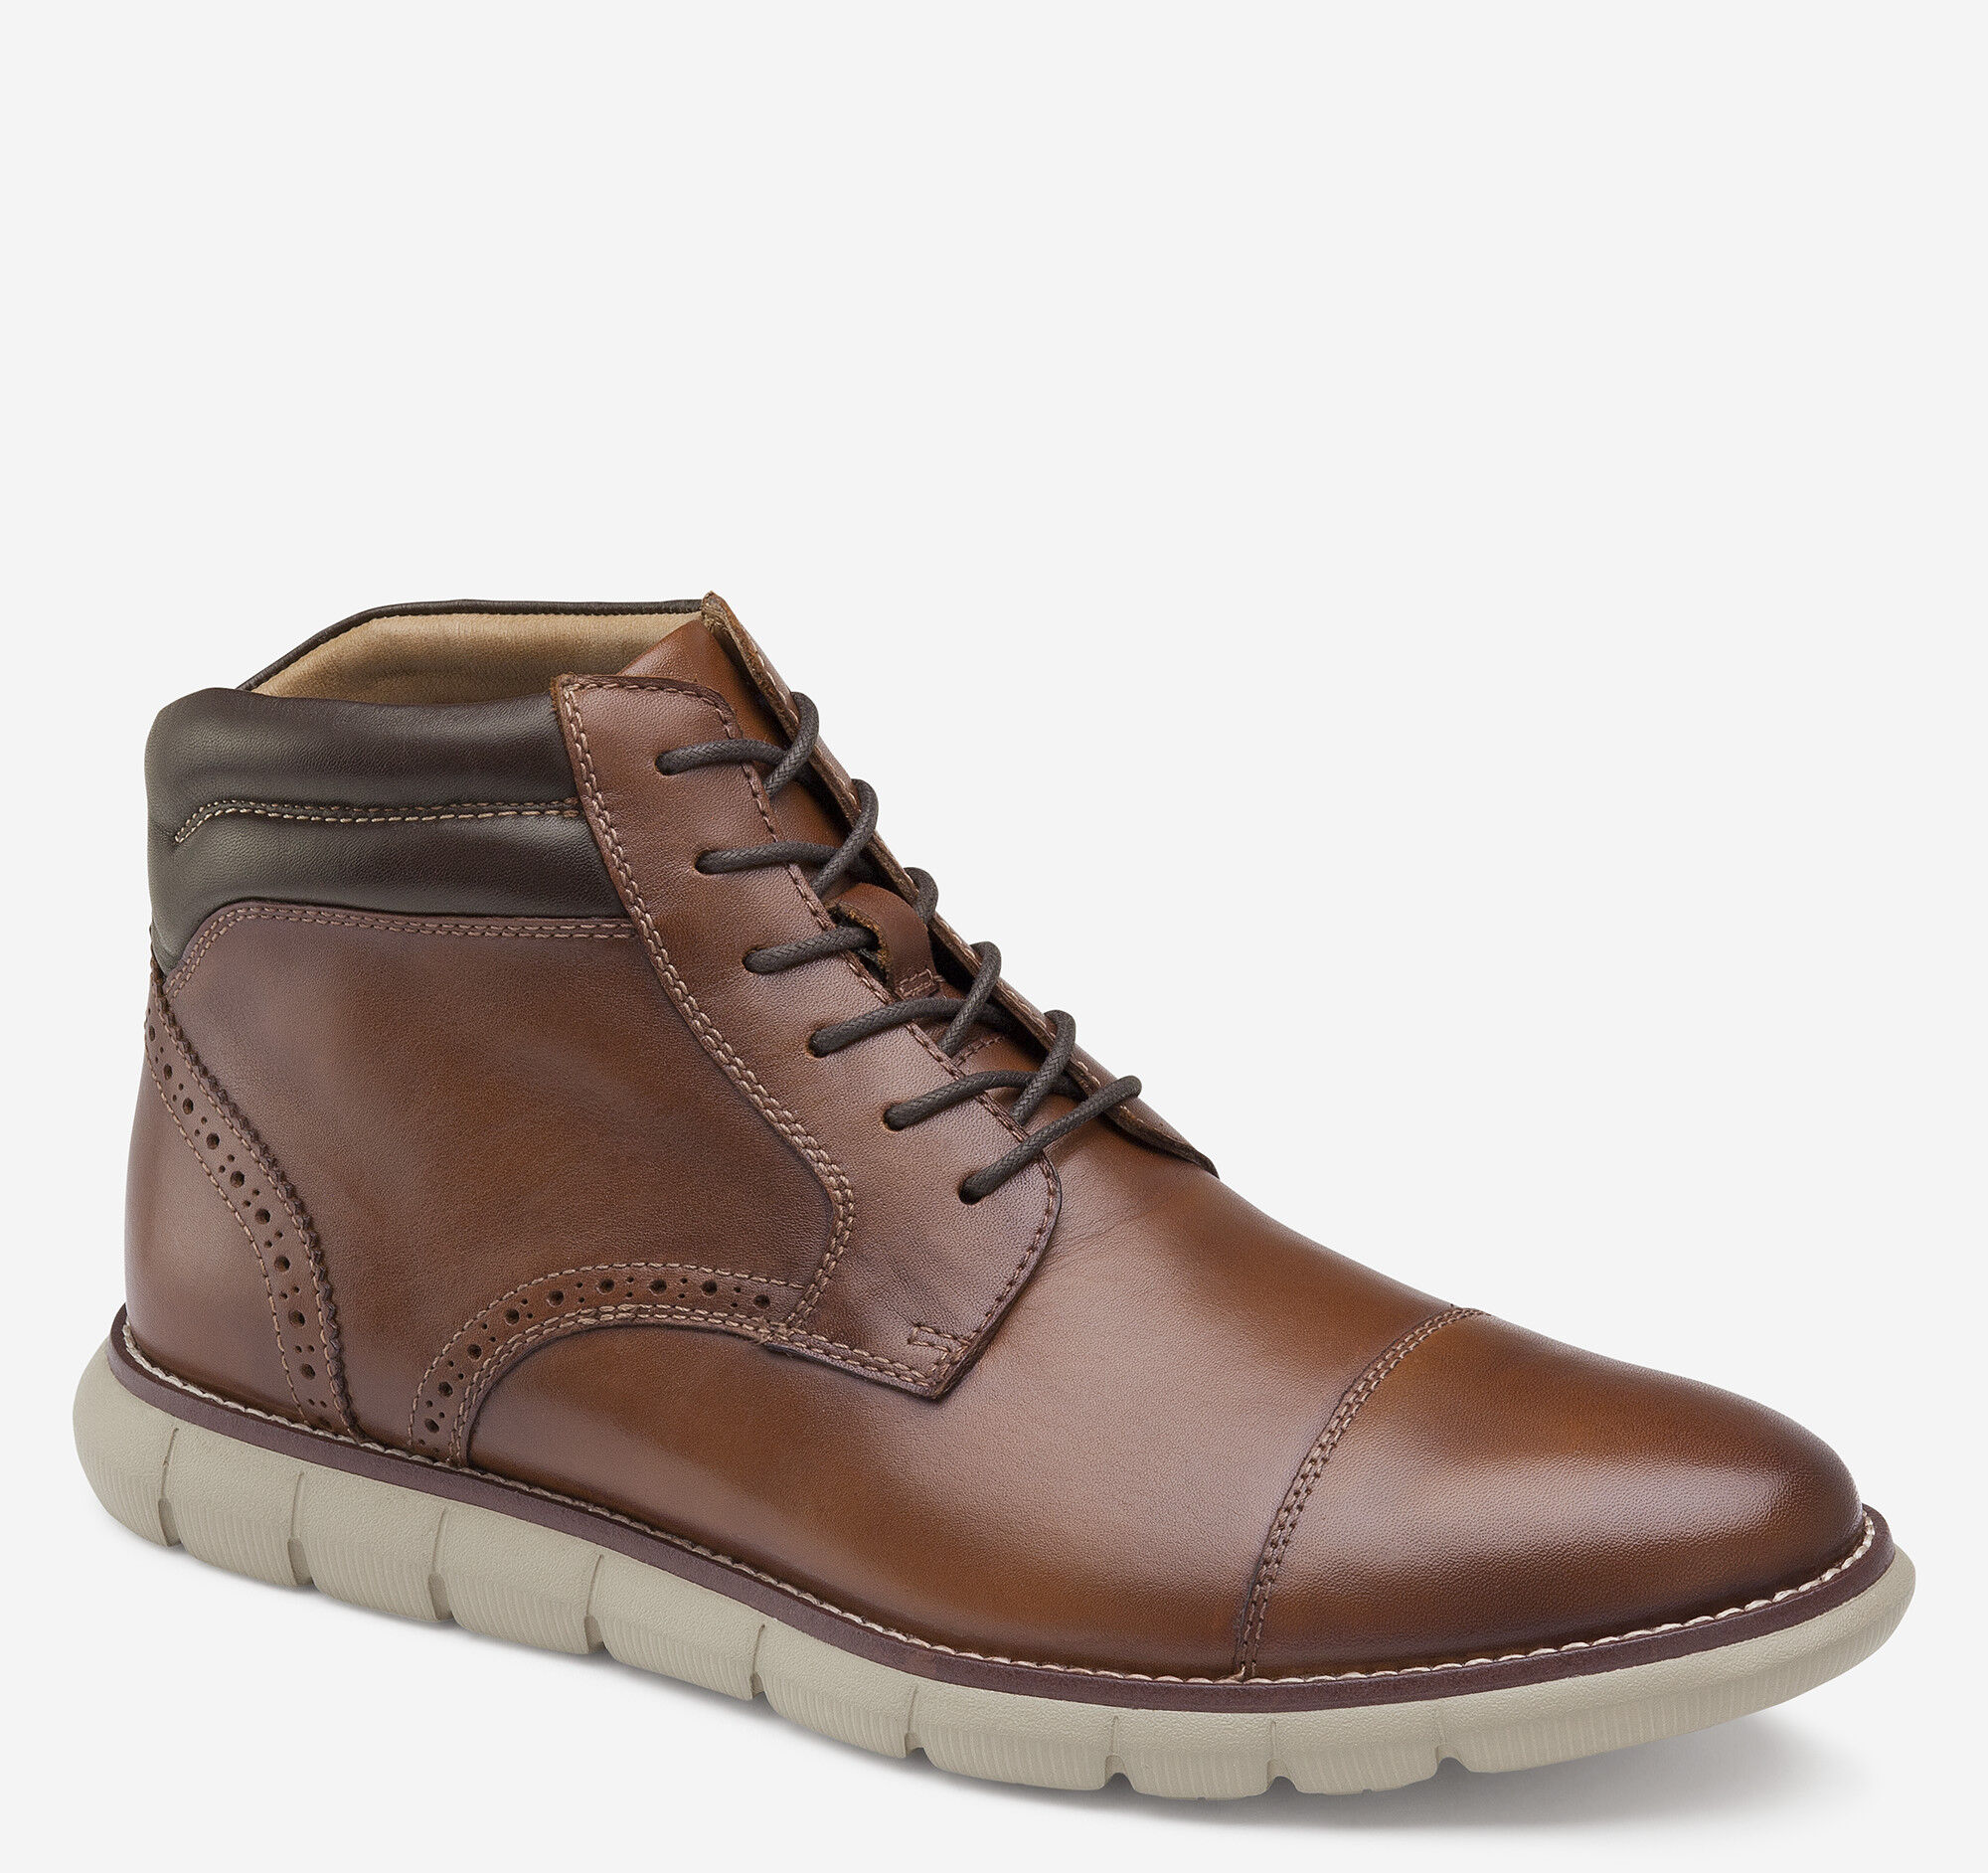 johnston and murphy winter boots